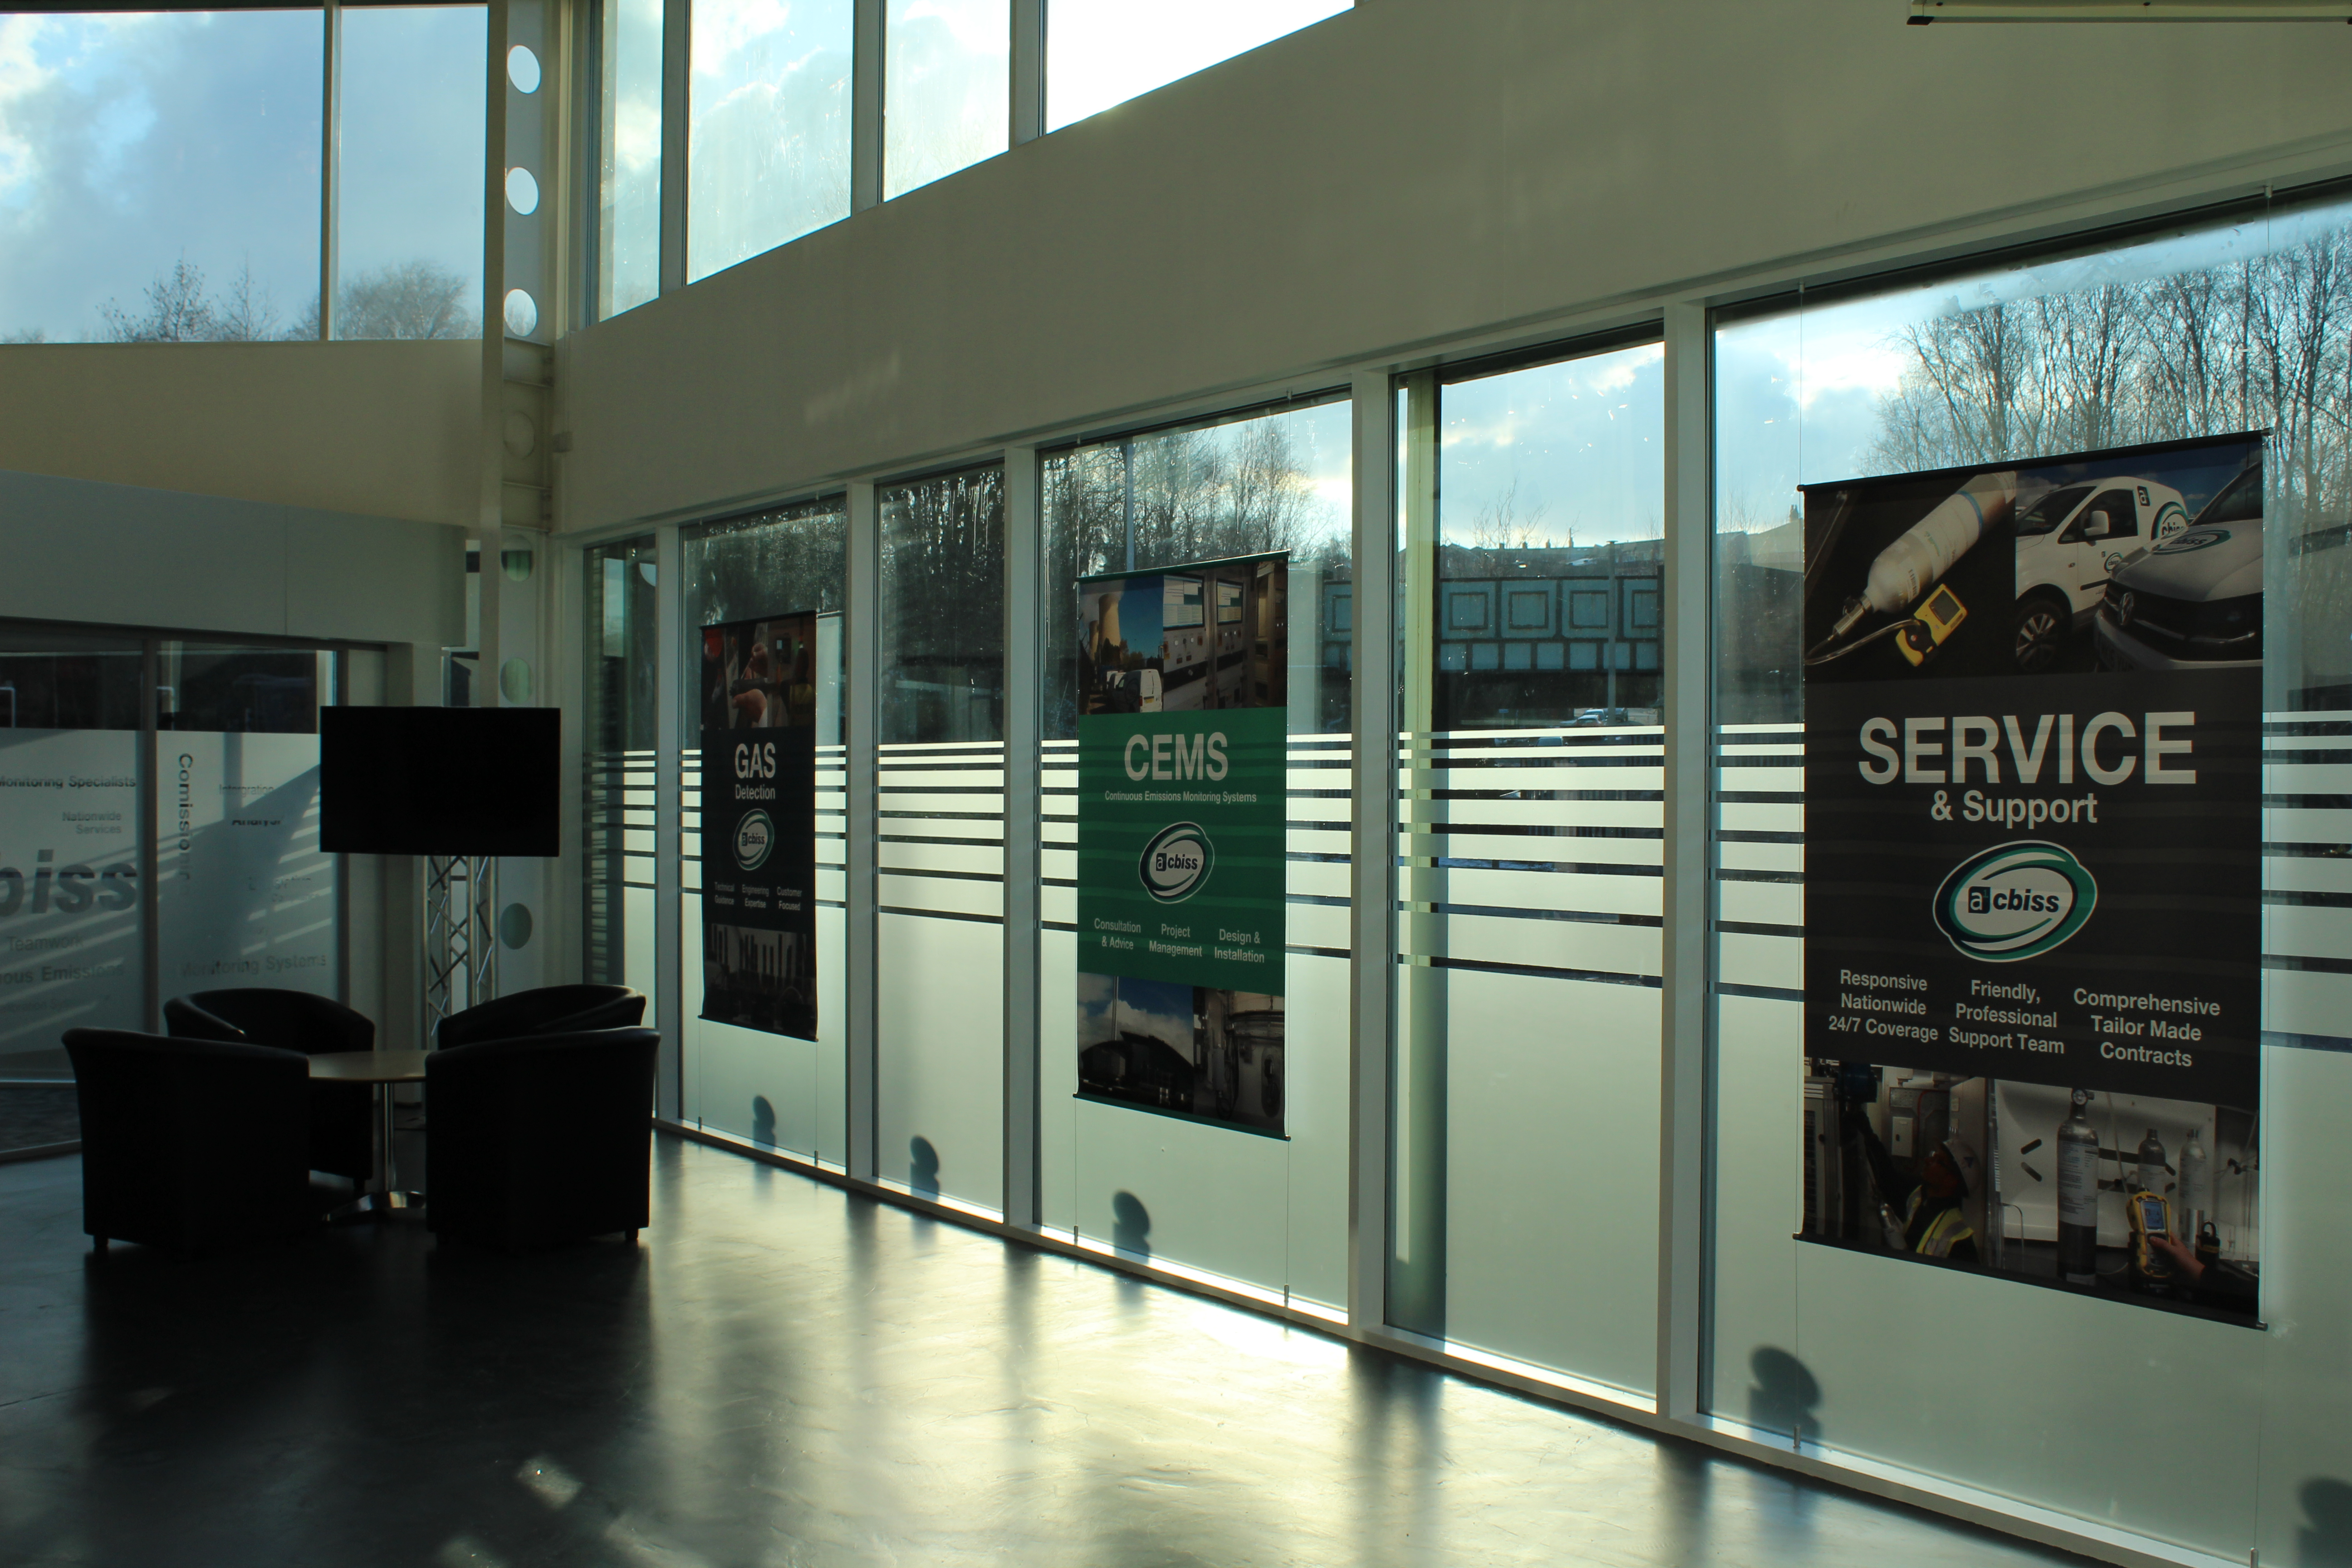 window banners, a1-cbiss banners, service banner, window graphics